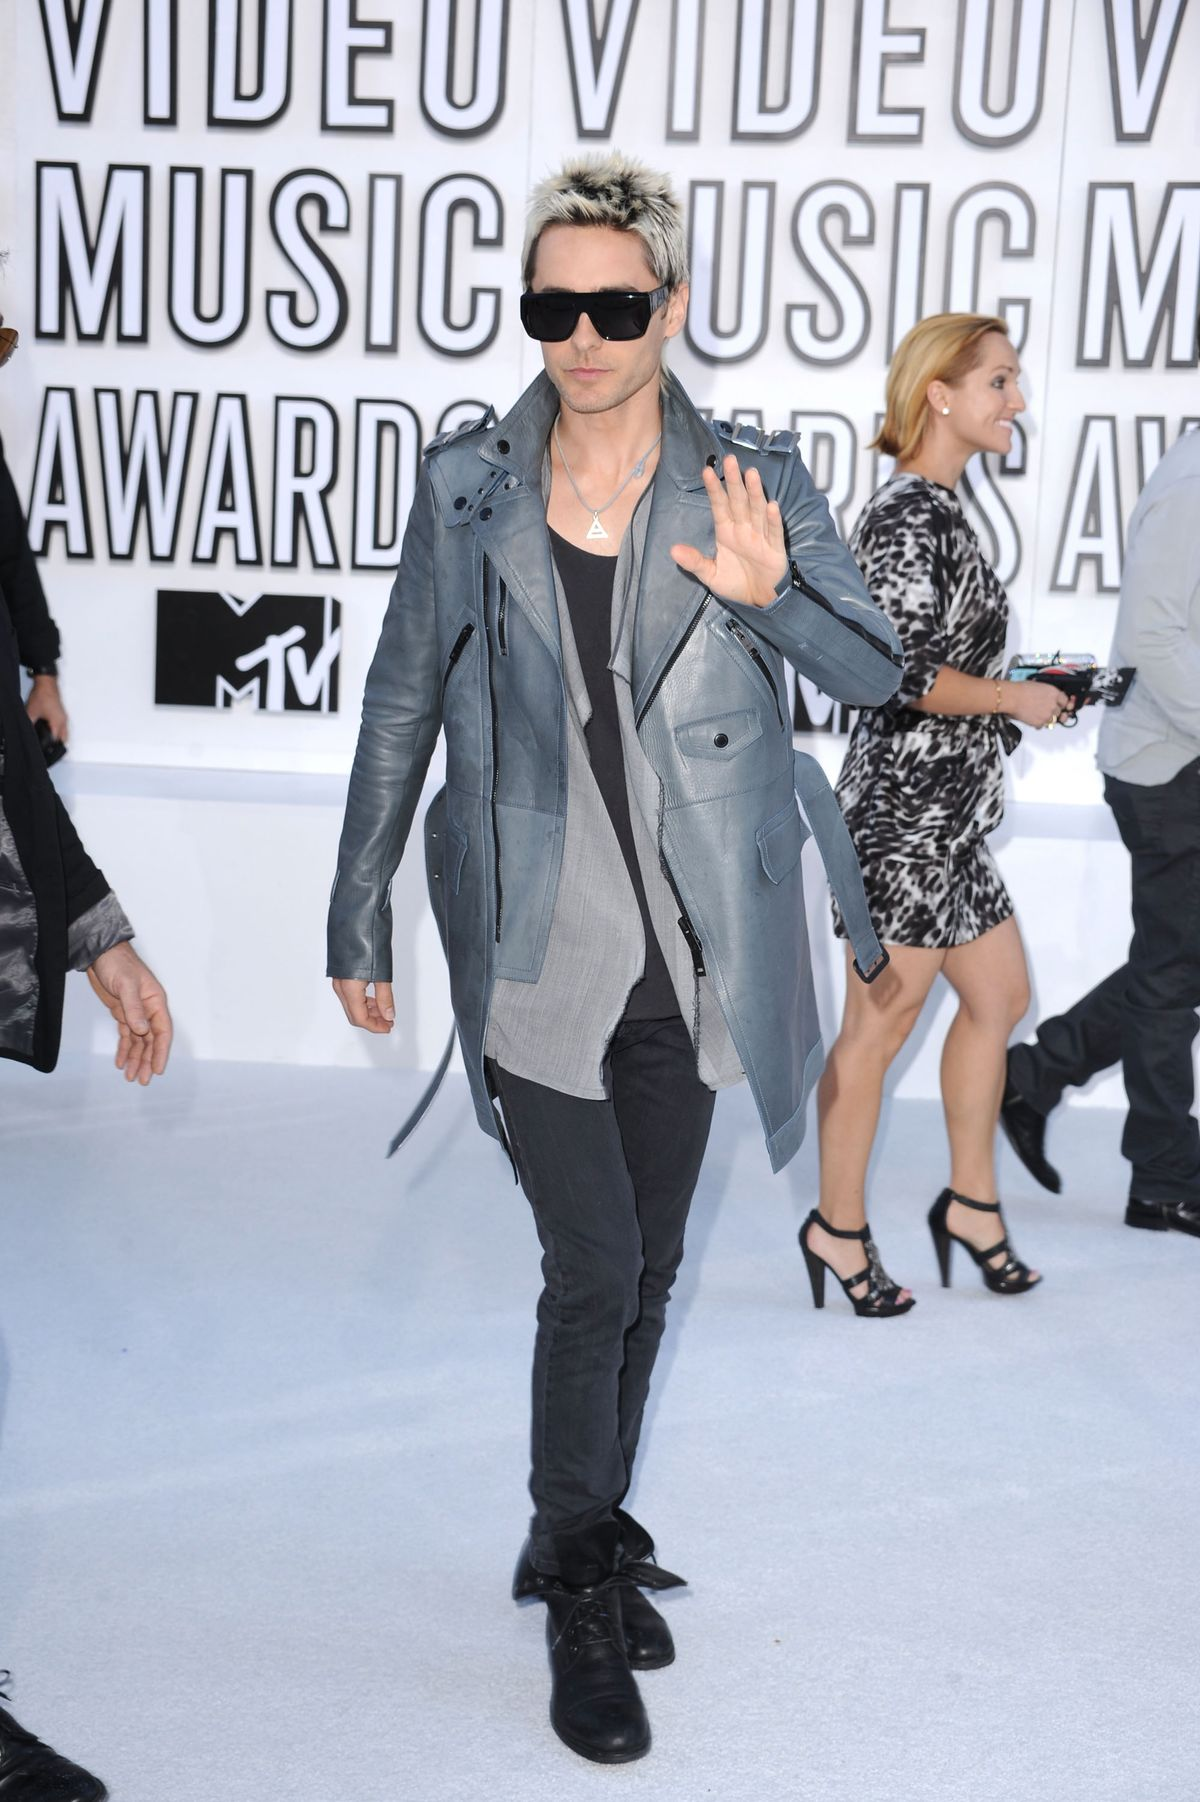 LOS ANGELES, CA - SEPTEMBER 12:  Singer Jared Leto of 30 Seconds to Mars arrives at the 2010 MTV Video Music Awards held at Nokia Theatre L.A. Live on September 12, 2010 in Los Angeles, California.  (Photo by Steve Granitz/WireImage)